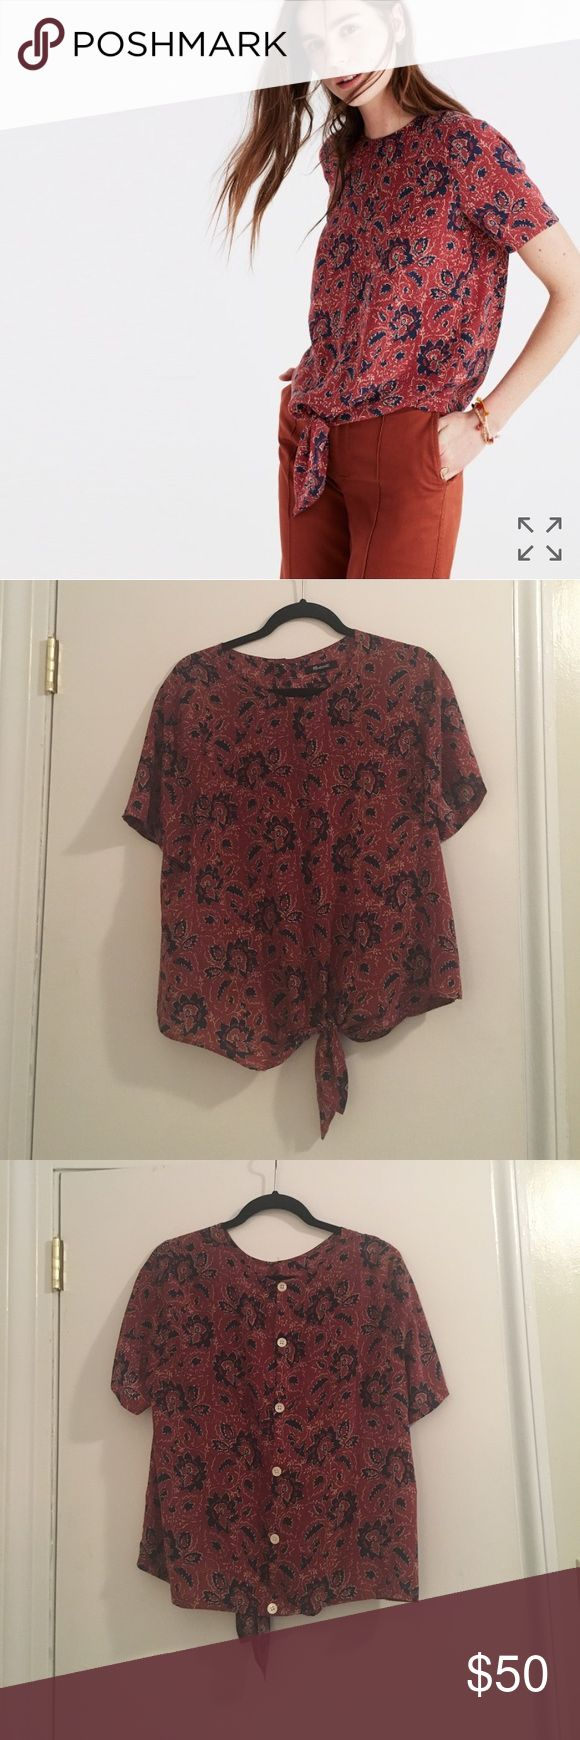 Madewell silk button-back tie tee, size L Madewell silk button-back tie tee in Assam Floral, size L. Worn once--excellent condition. Really cute tie front and button-back details! Madewell Tops Blouses